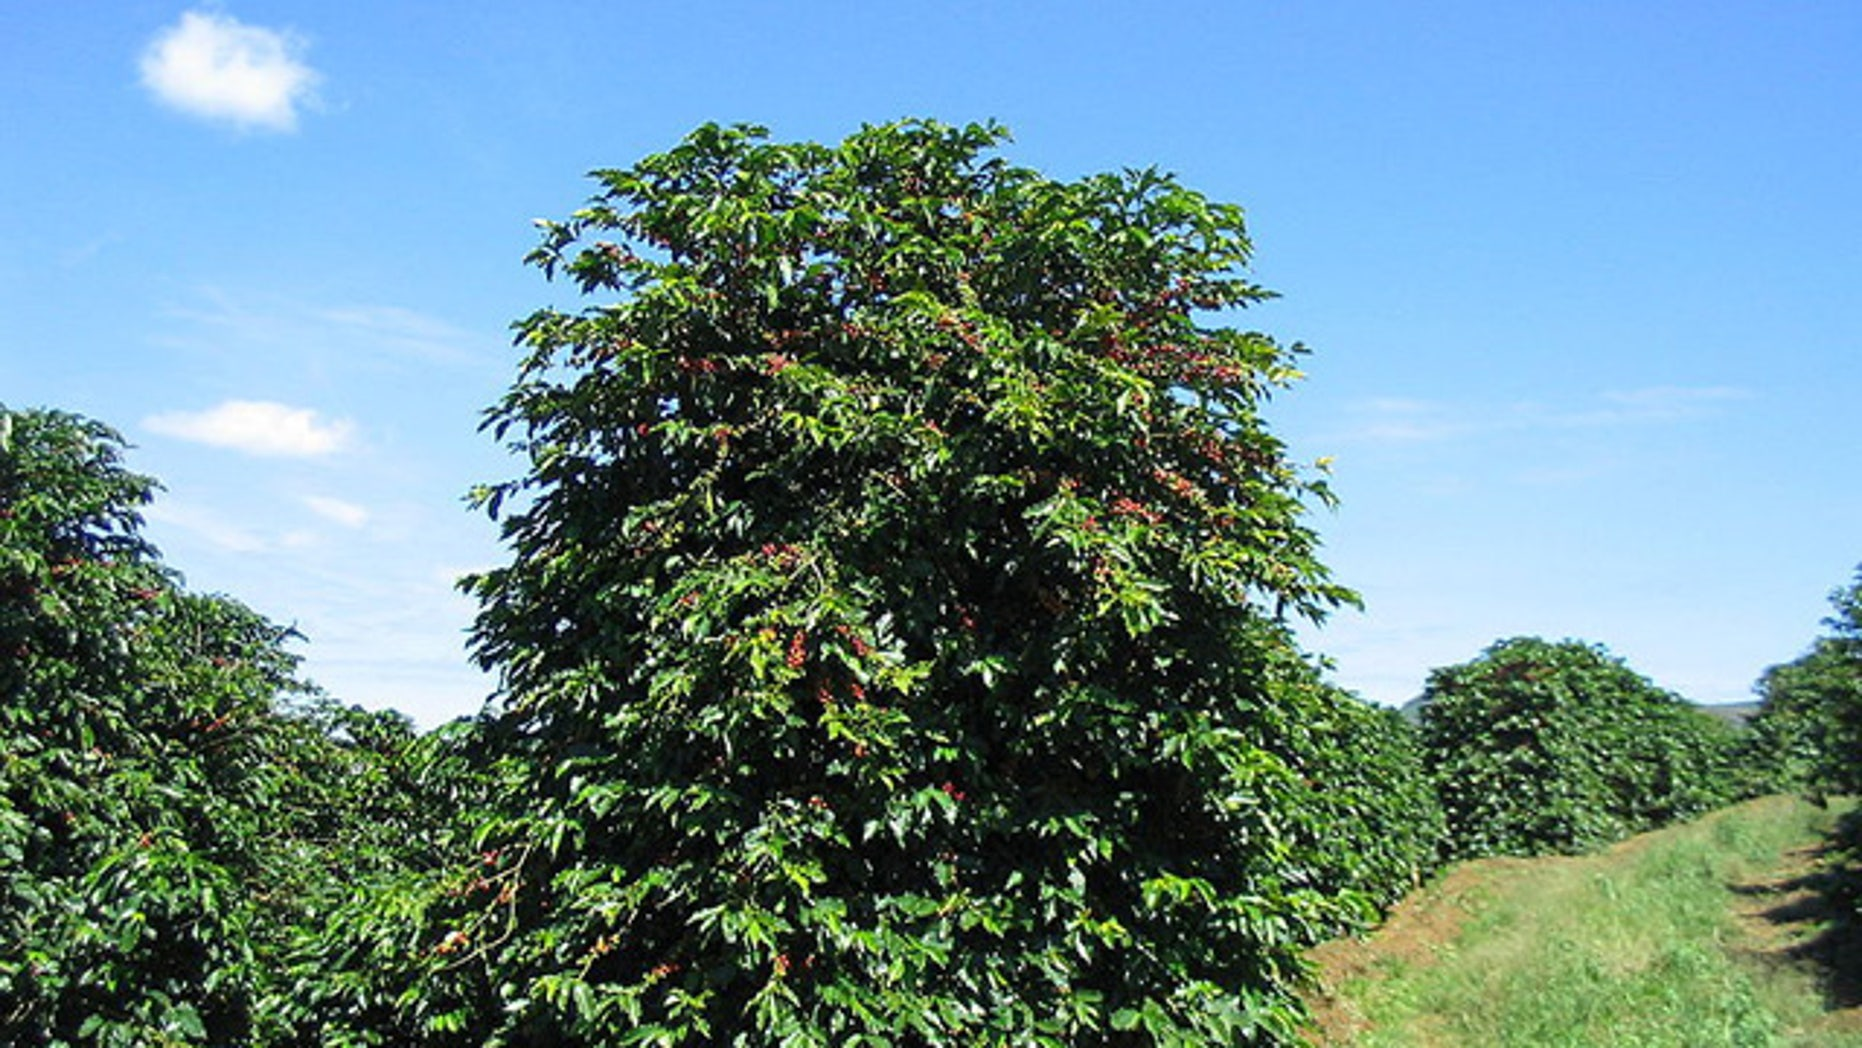 Coffee trees on a plantation in Brazil. The wild beans may be endangered by climate change, according to British botanists.